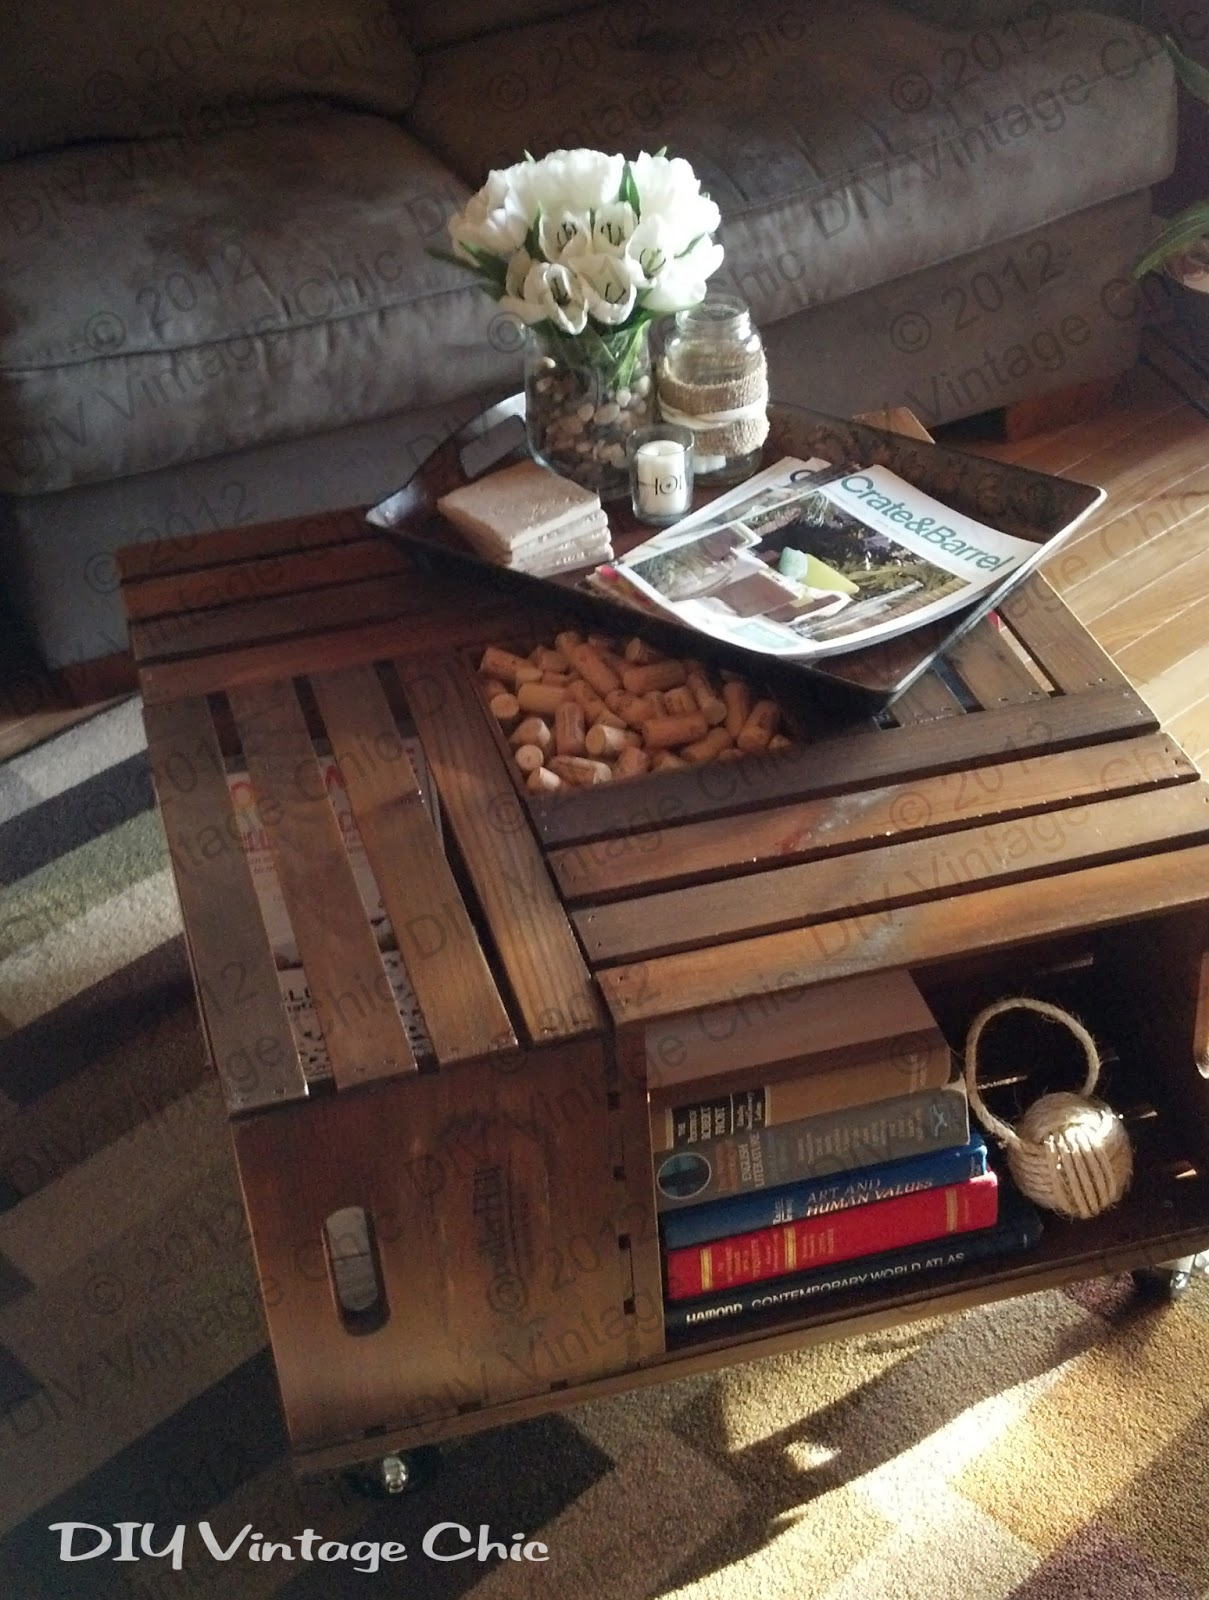 DIY Vintage Chic Vintage Wine Crate Coffee Table